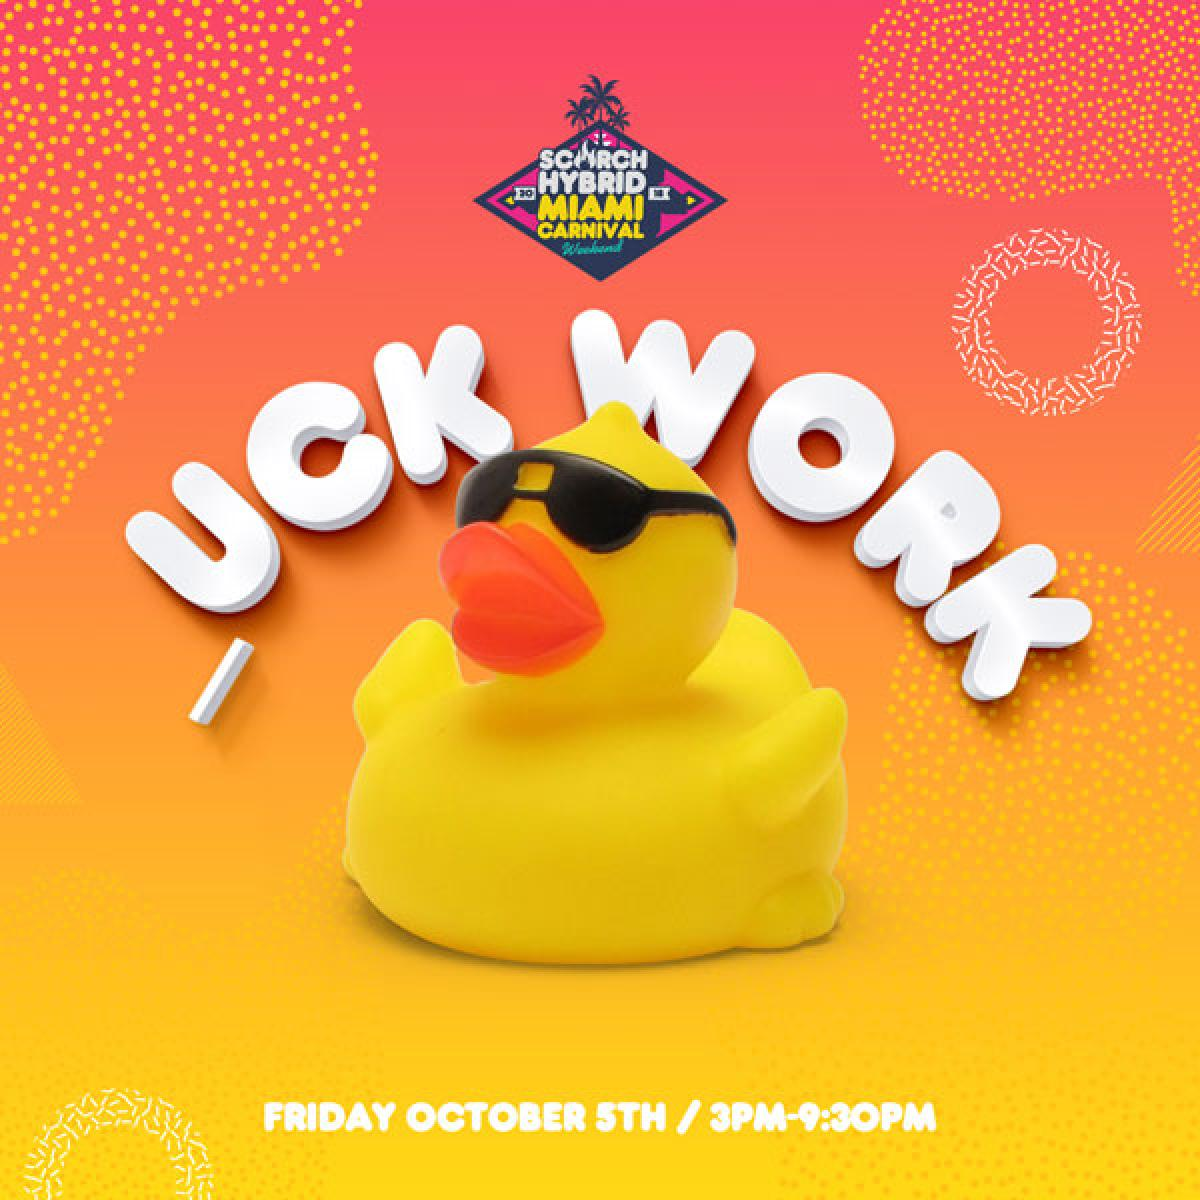 Duck Work Miami flyer or graphic.